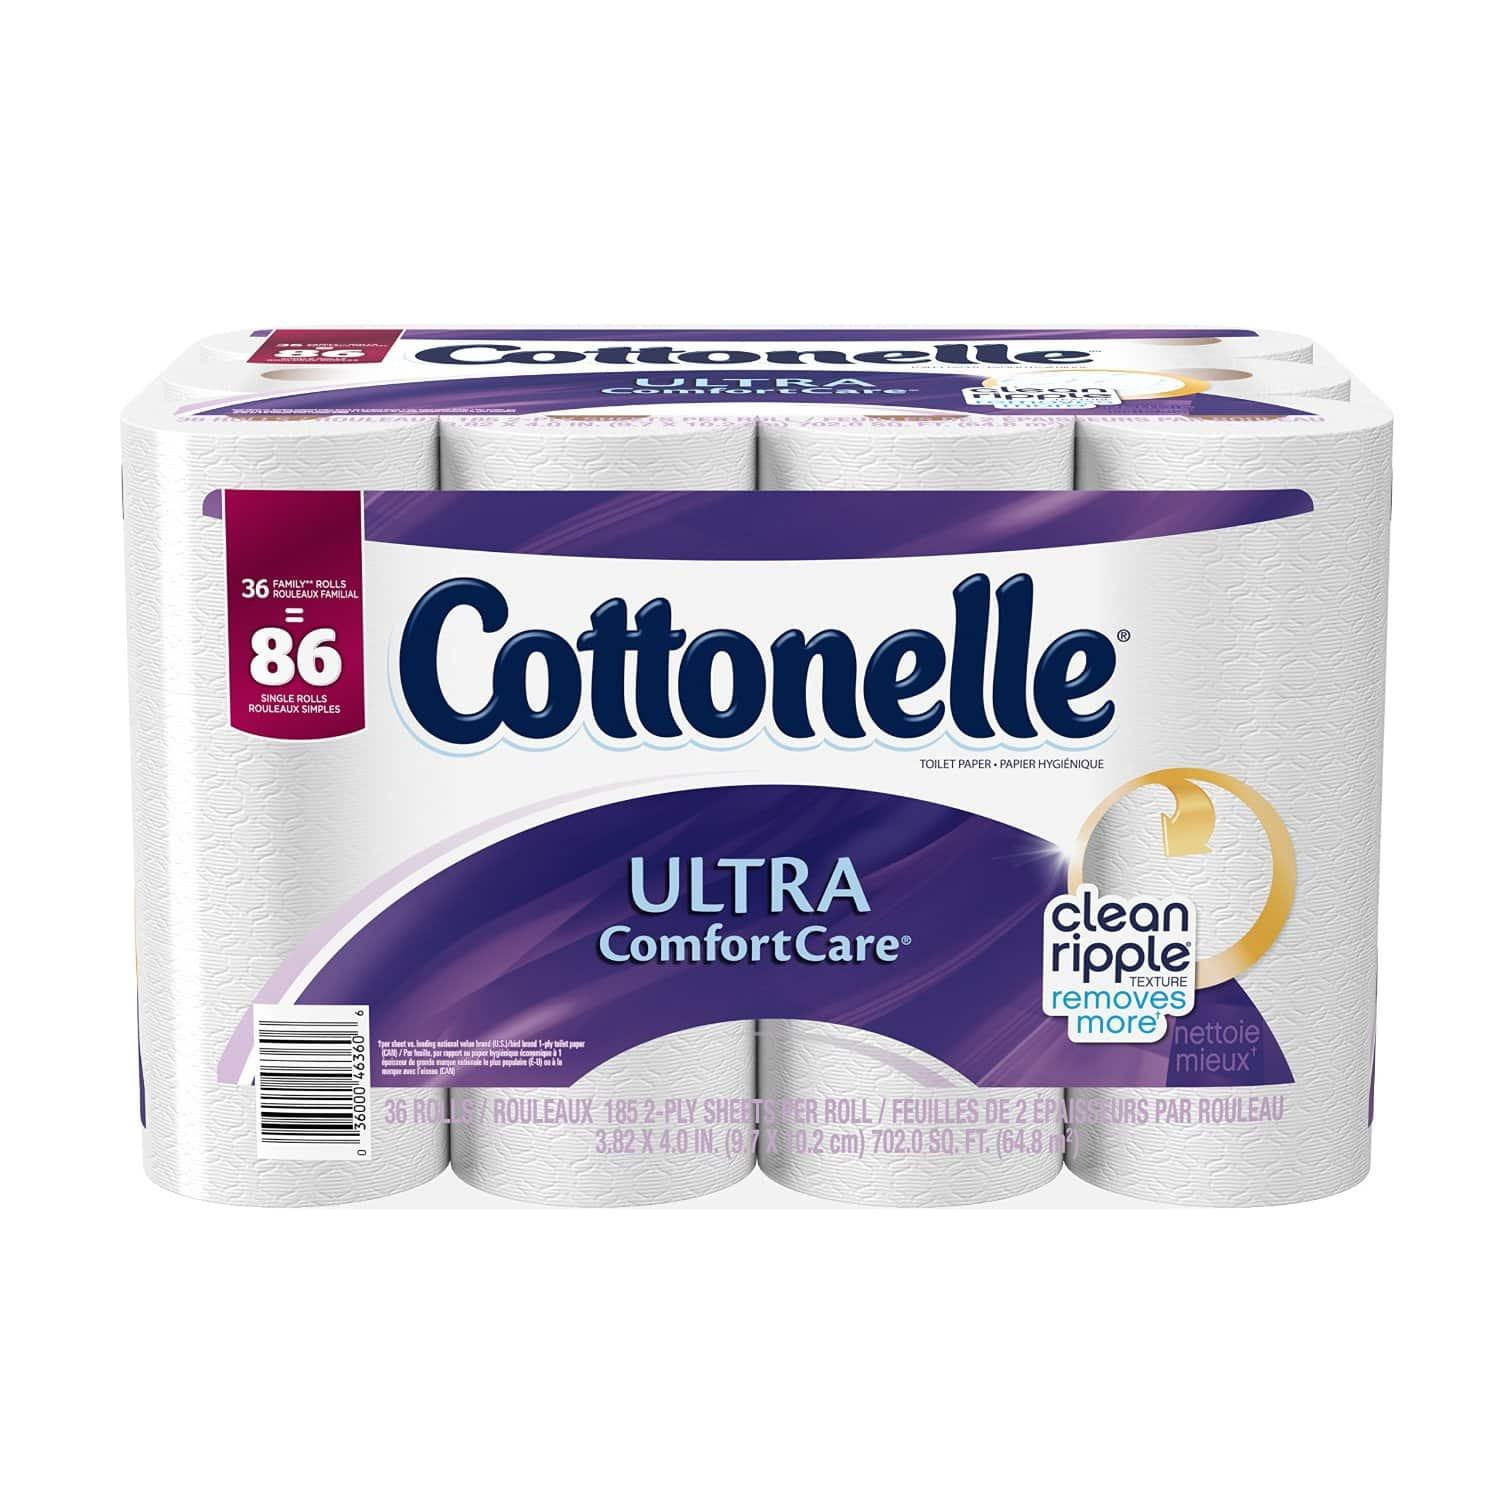 36-Count Cottonelle Ultra ComfortCare Toilet Paper Bath Tissue $15.37 or less + free shipping